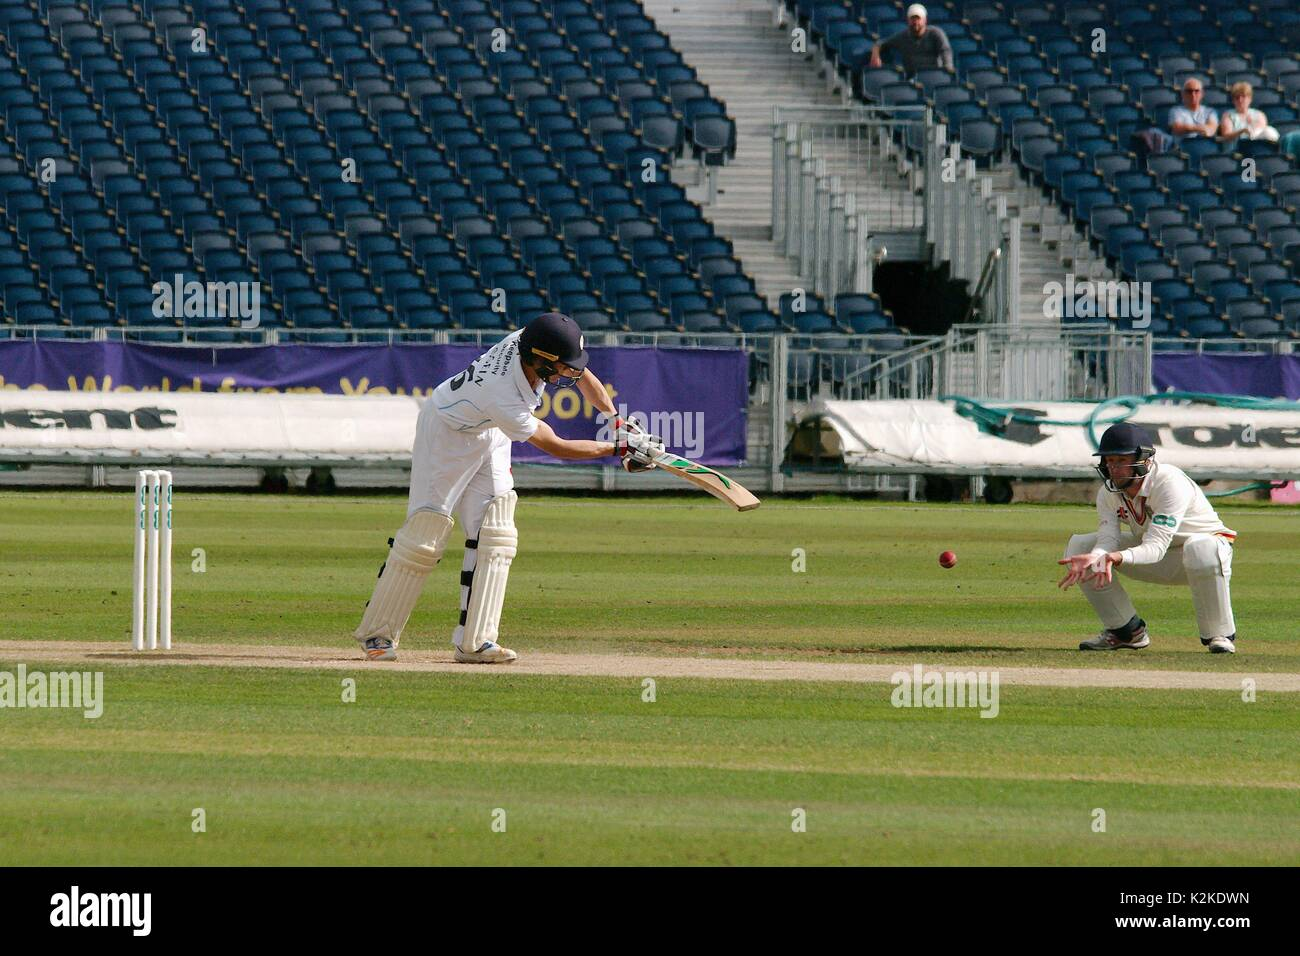 Chester le Street, UK. 31st Aug, 2017. Derbyshire batsman Harvey Hosein guides the ball past a Durham close in fielder in the Specsavers County Championship Division 2 match at Emirates Riverside, Chester le Street. Credit: Colin Edwards/Alamy Live News - Stock Image